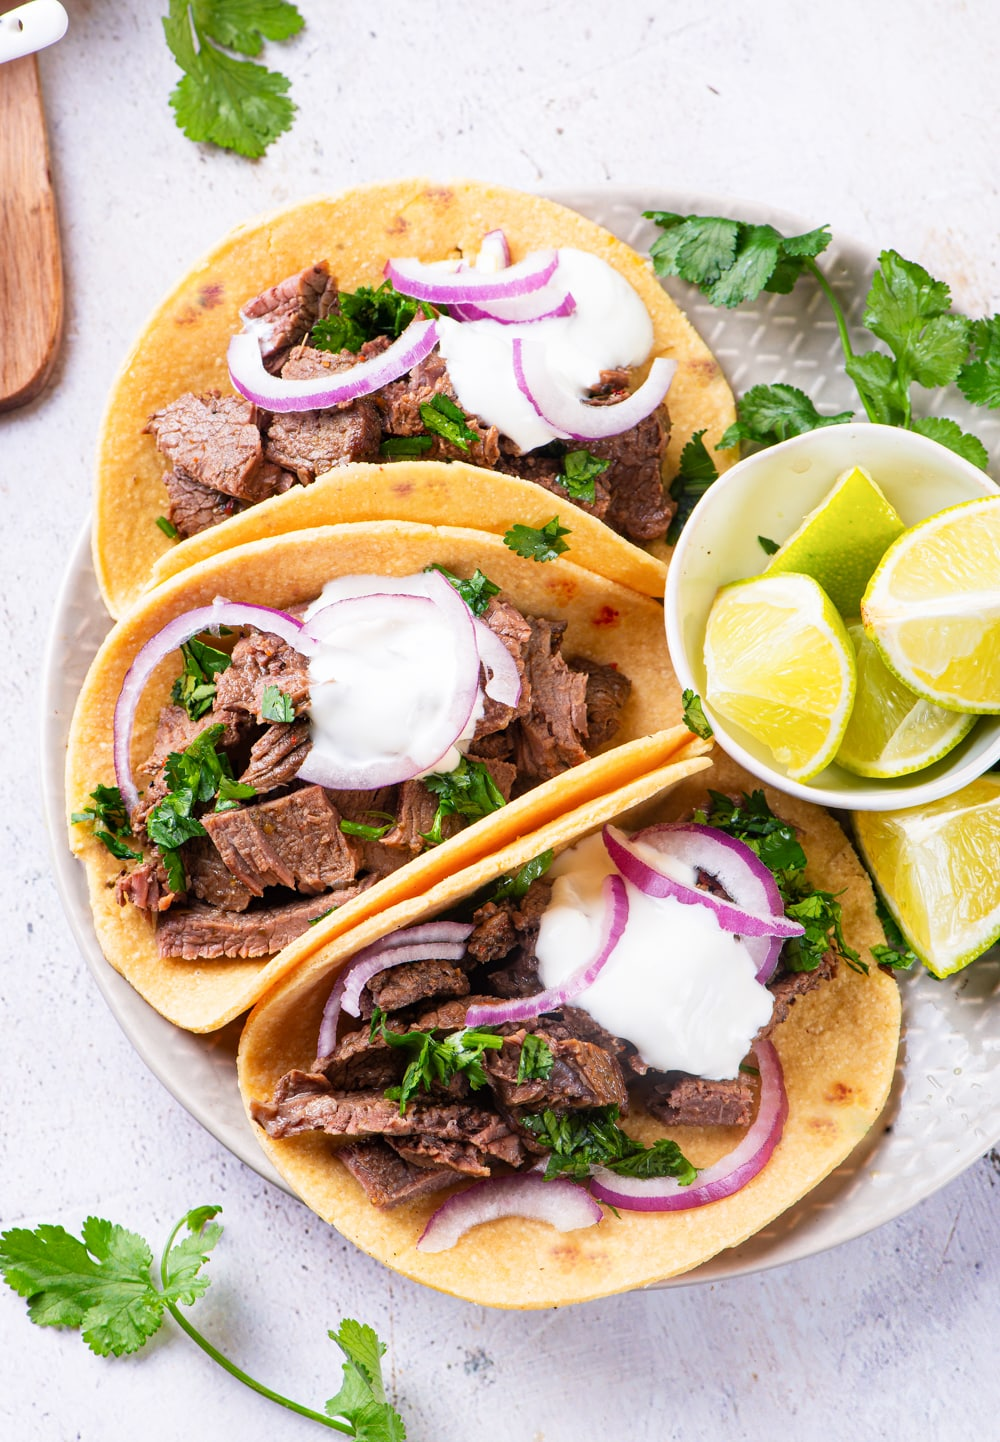 3 carne asada tacos on a plate next to a small bowl of cut up limes.